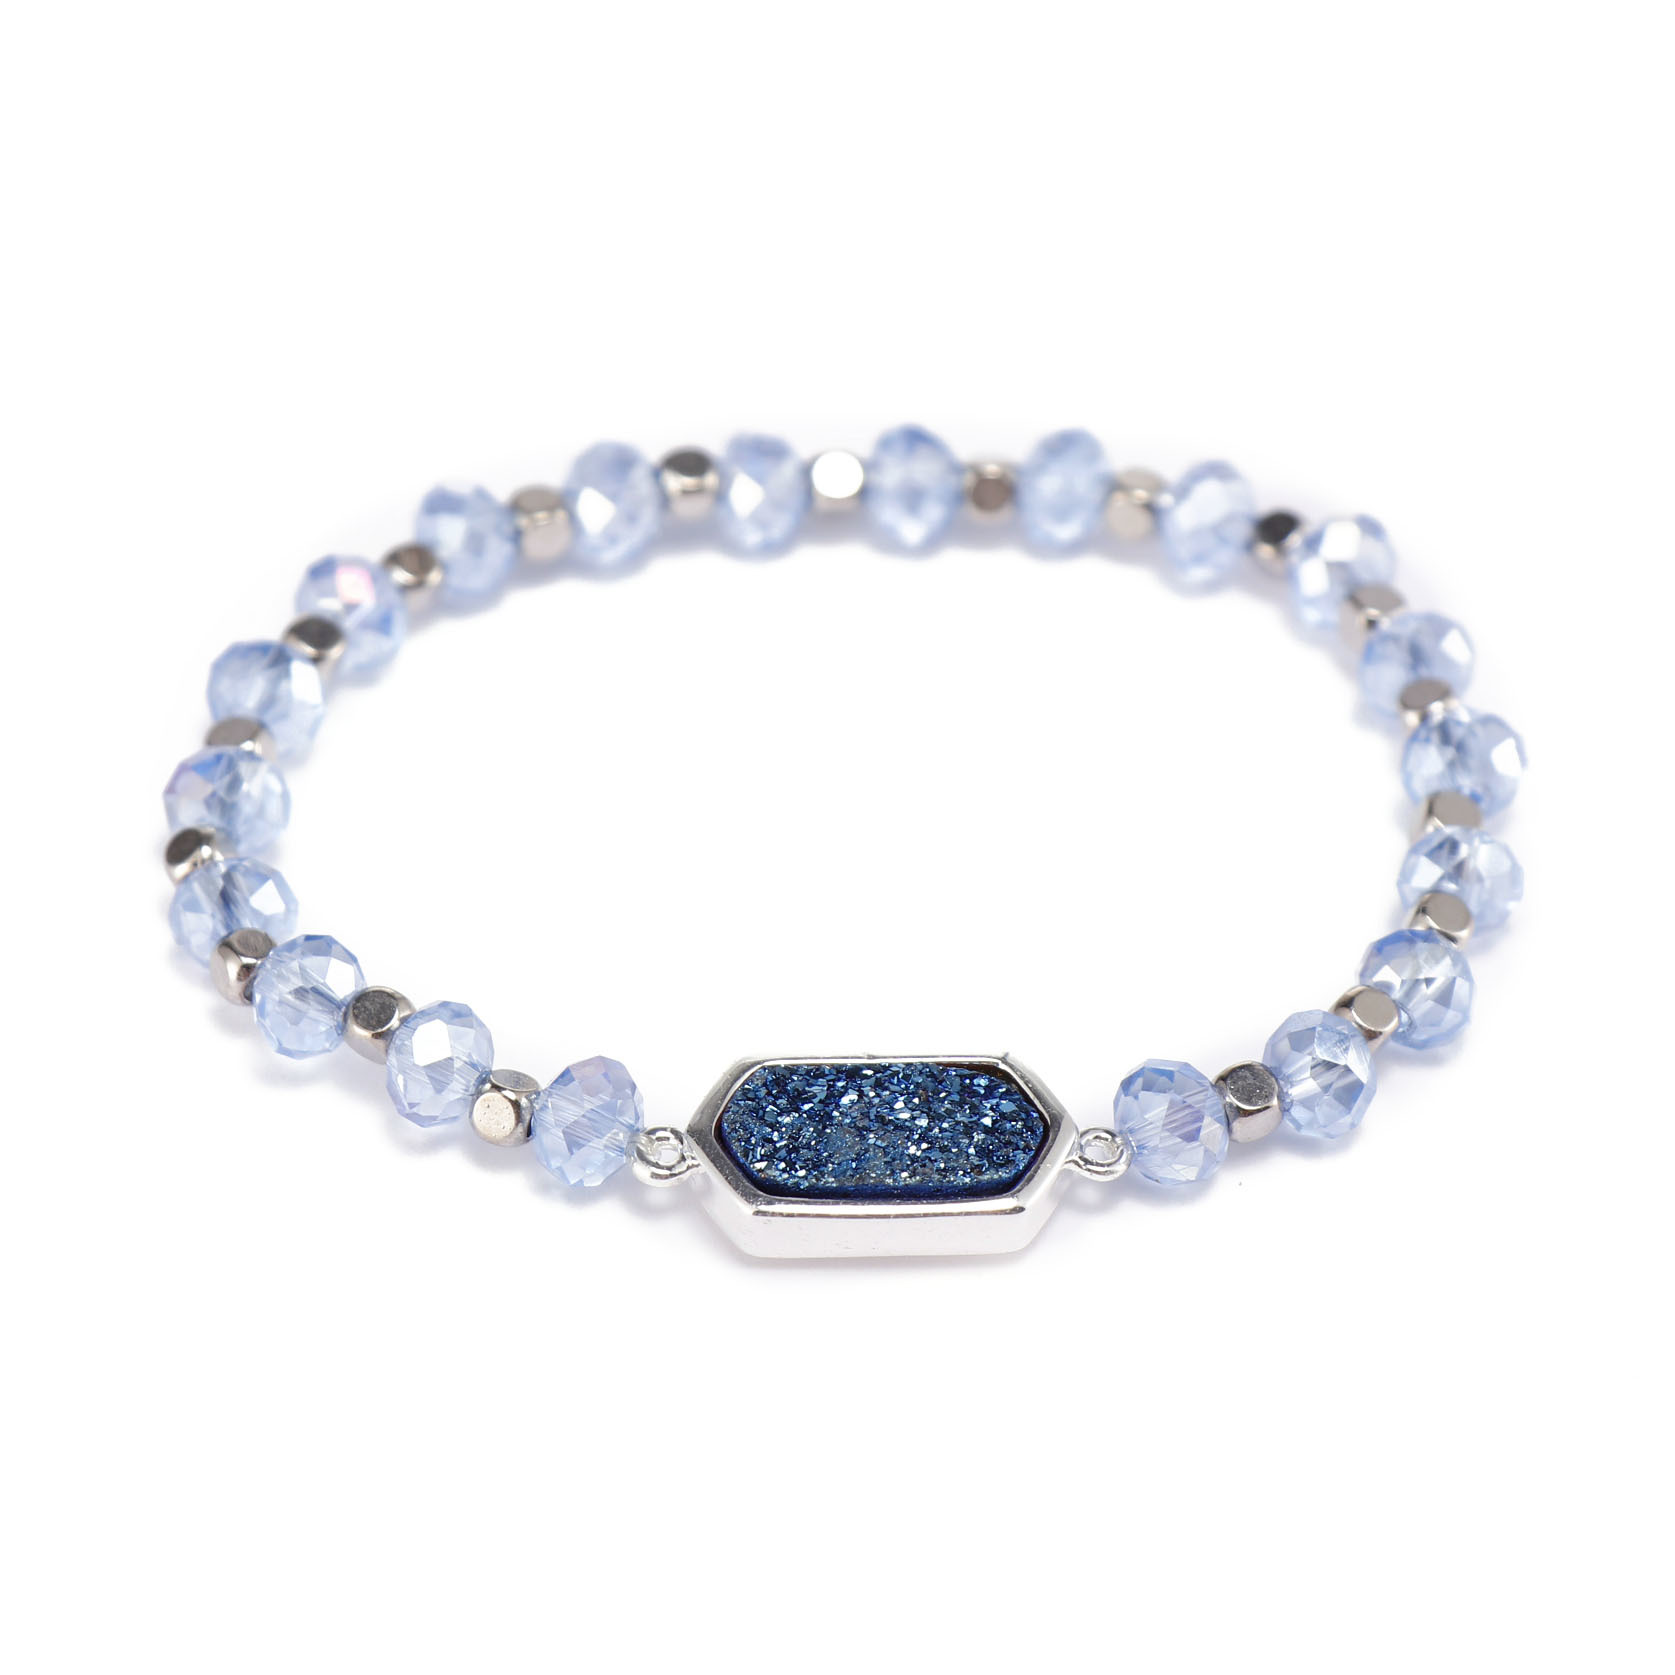 Handmade Crystal Beads Bracelet With Druzy Charms